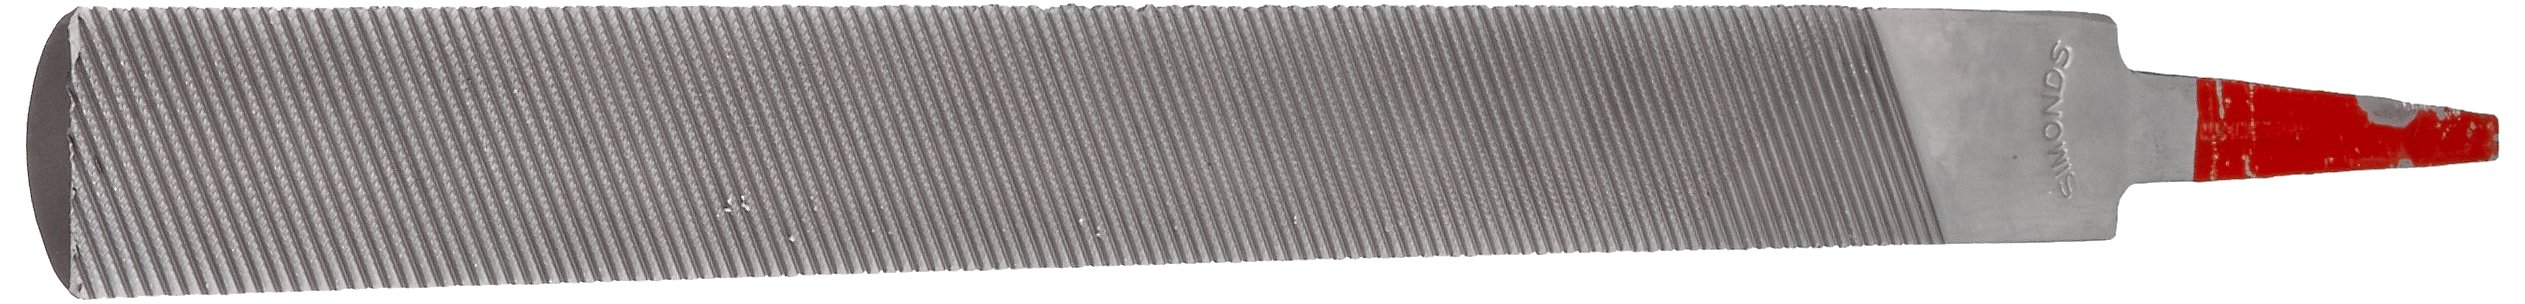 Simonds Hand File for Aluminum, American Pattern, Double Cut, Half-Round, Coarse, 10'' Length, 15/16'' Width, 9/32'' Thickness